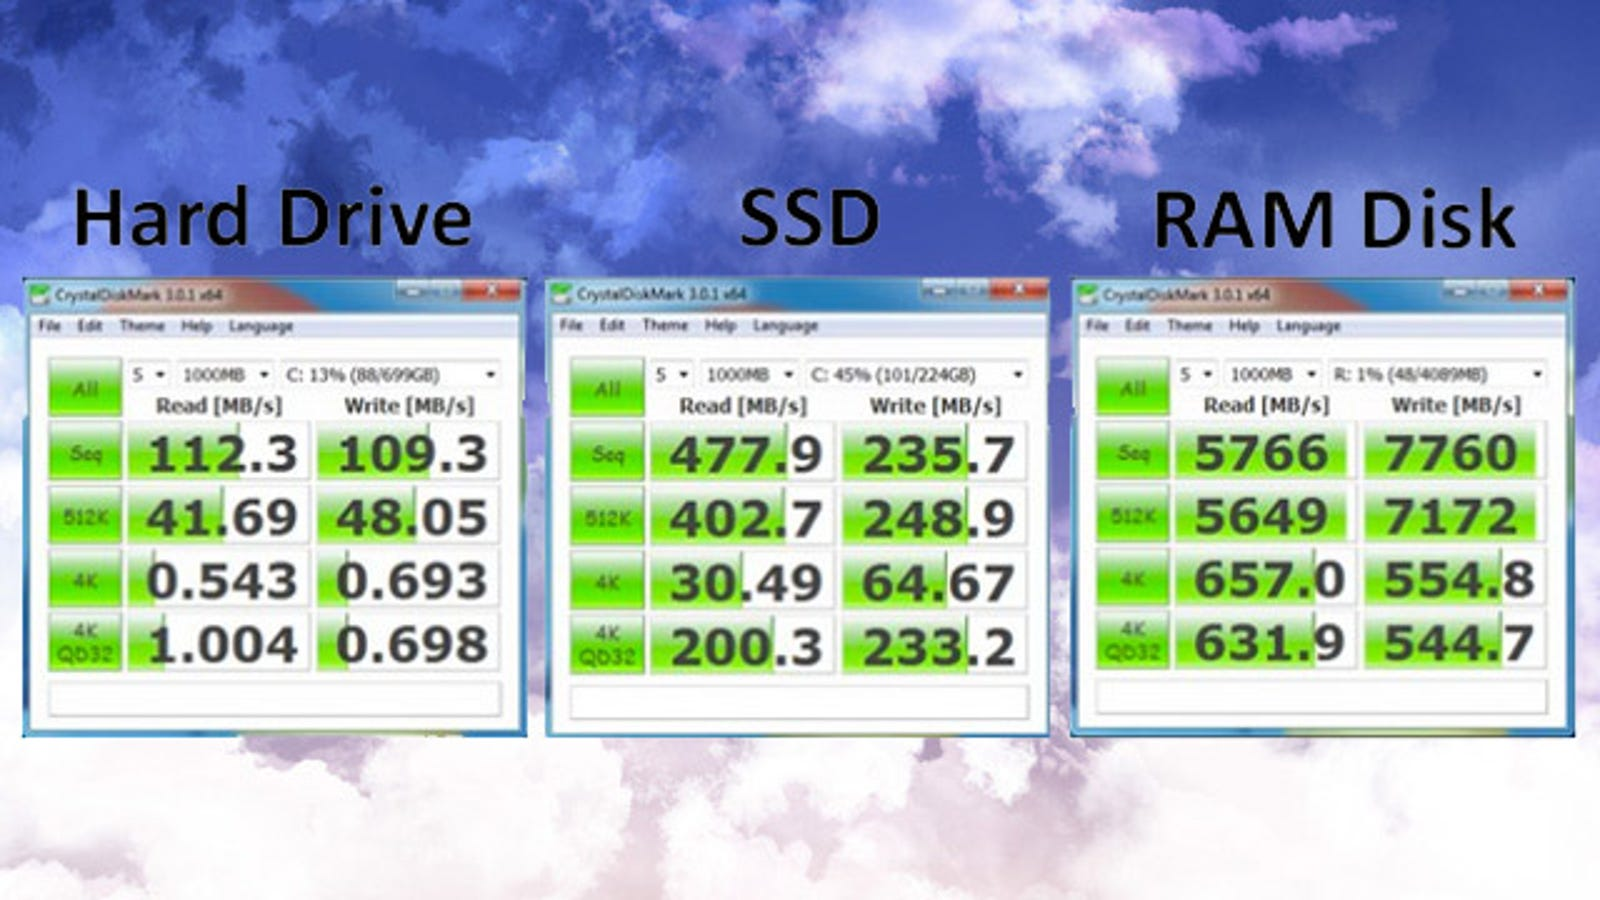 Add a RAM Disk to Your Computer for Faster-than-SSD Performance